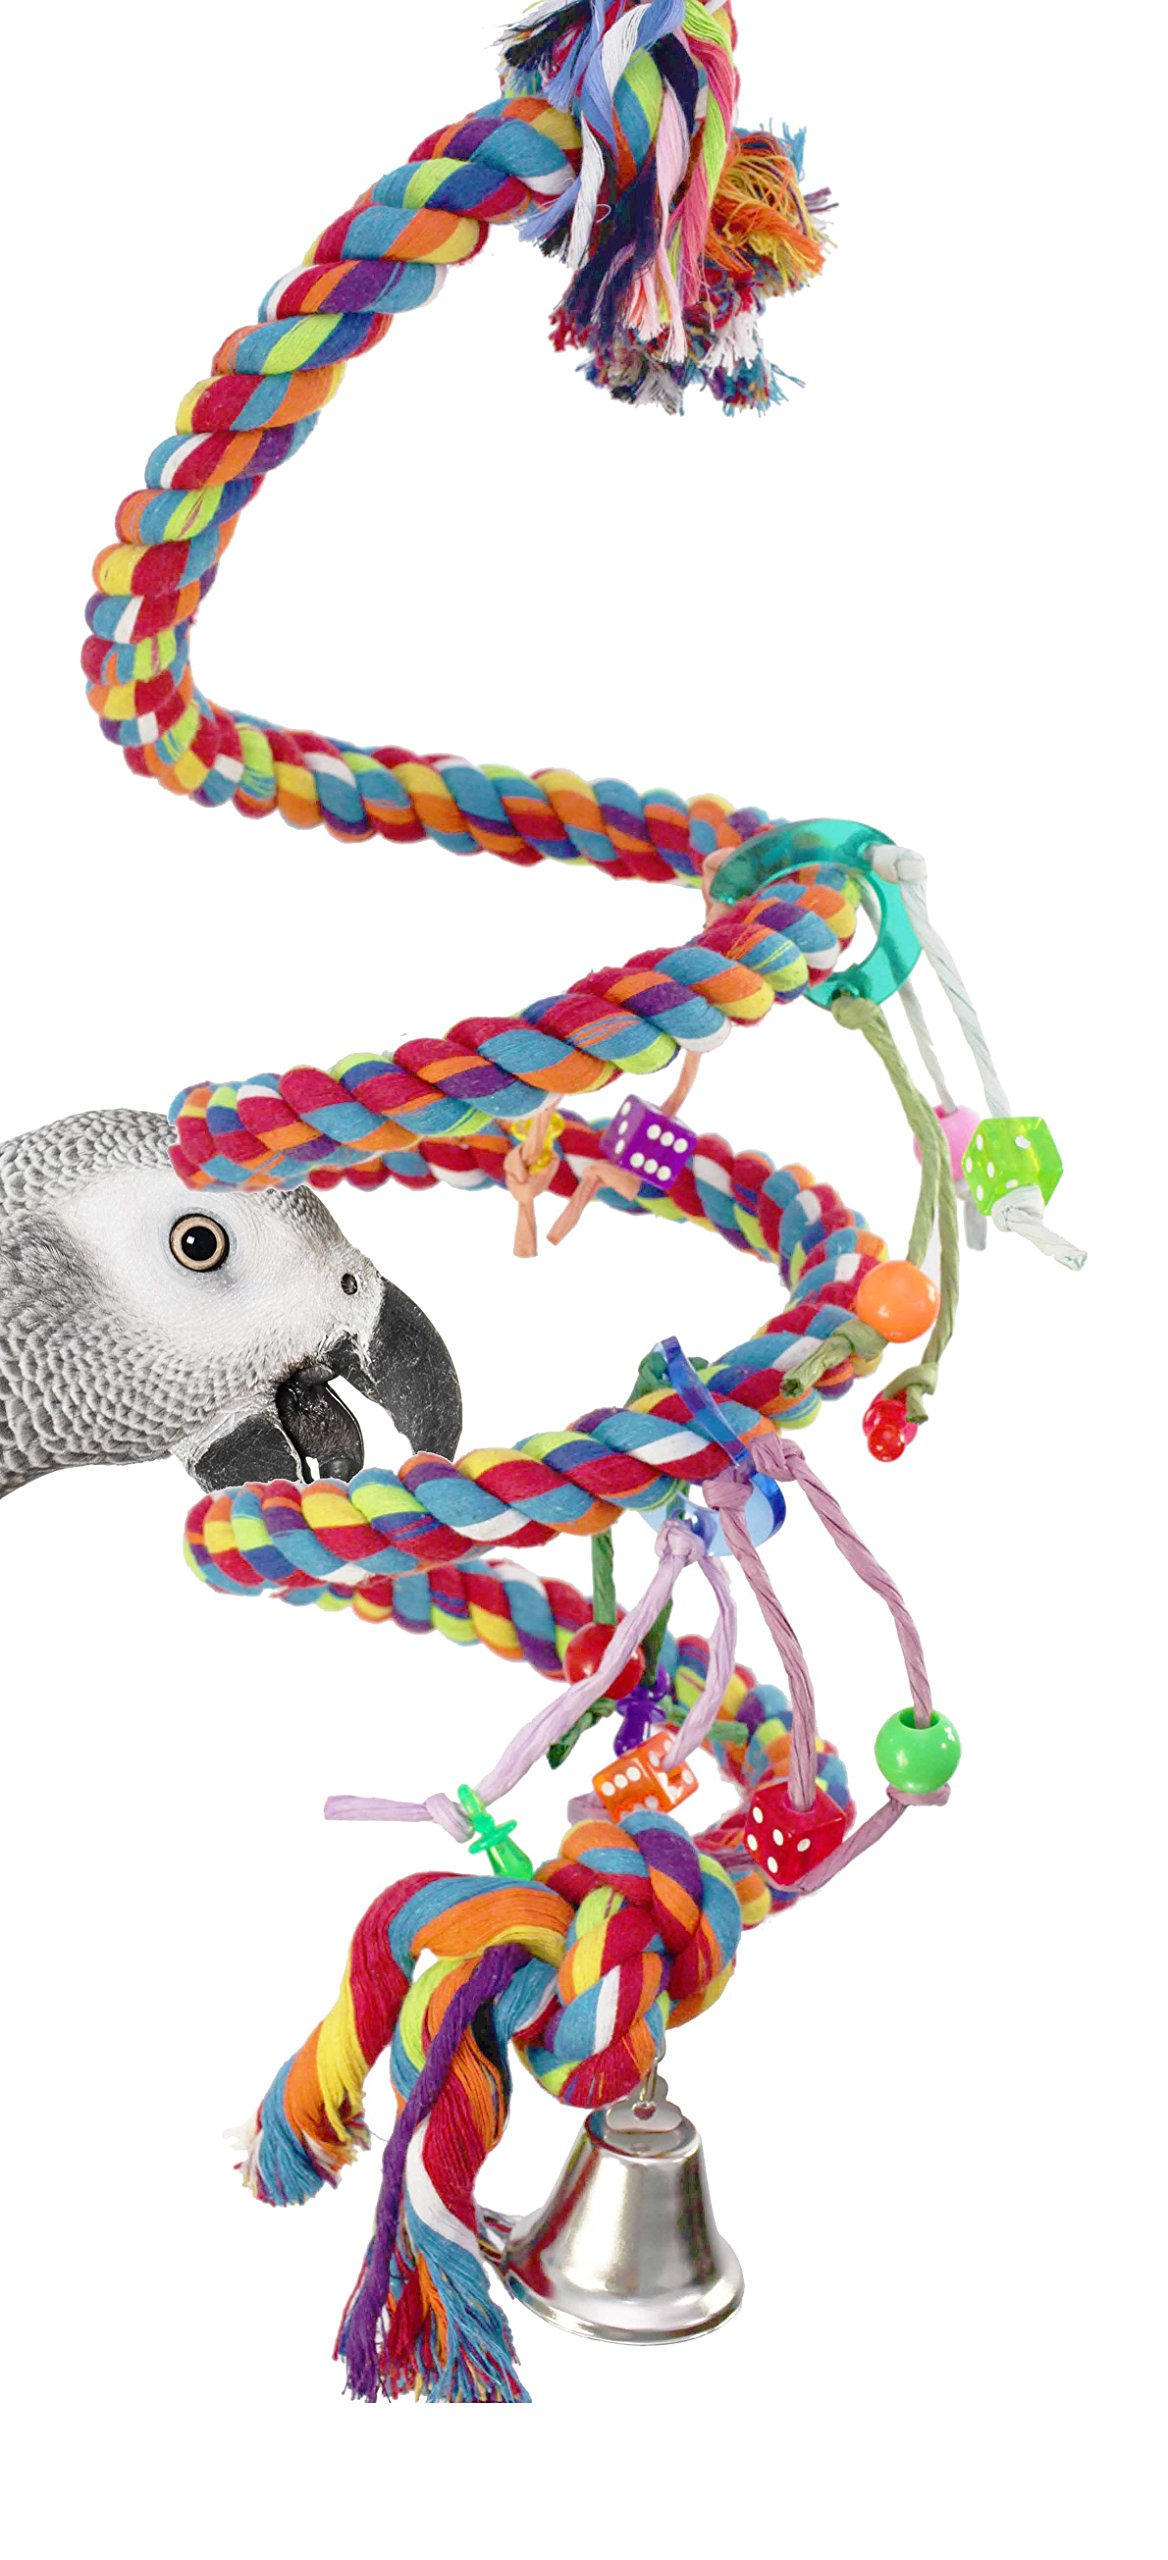 Bonka Bird Toys 1961 Large Charm Rope Boing Coil Swing Bird Toy parrot cage toys cages Amazon by Bonka Bird Toys